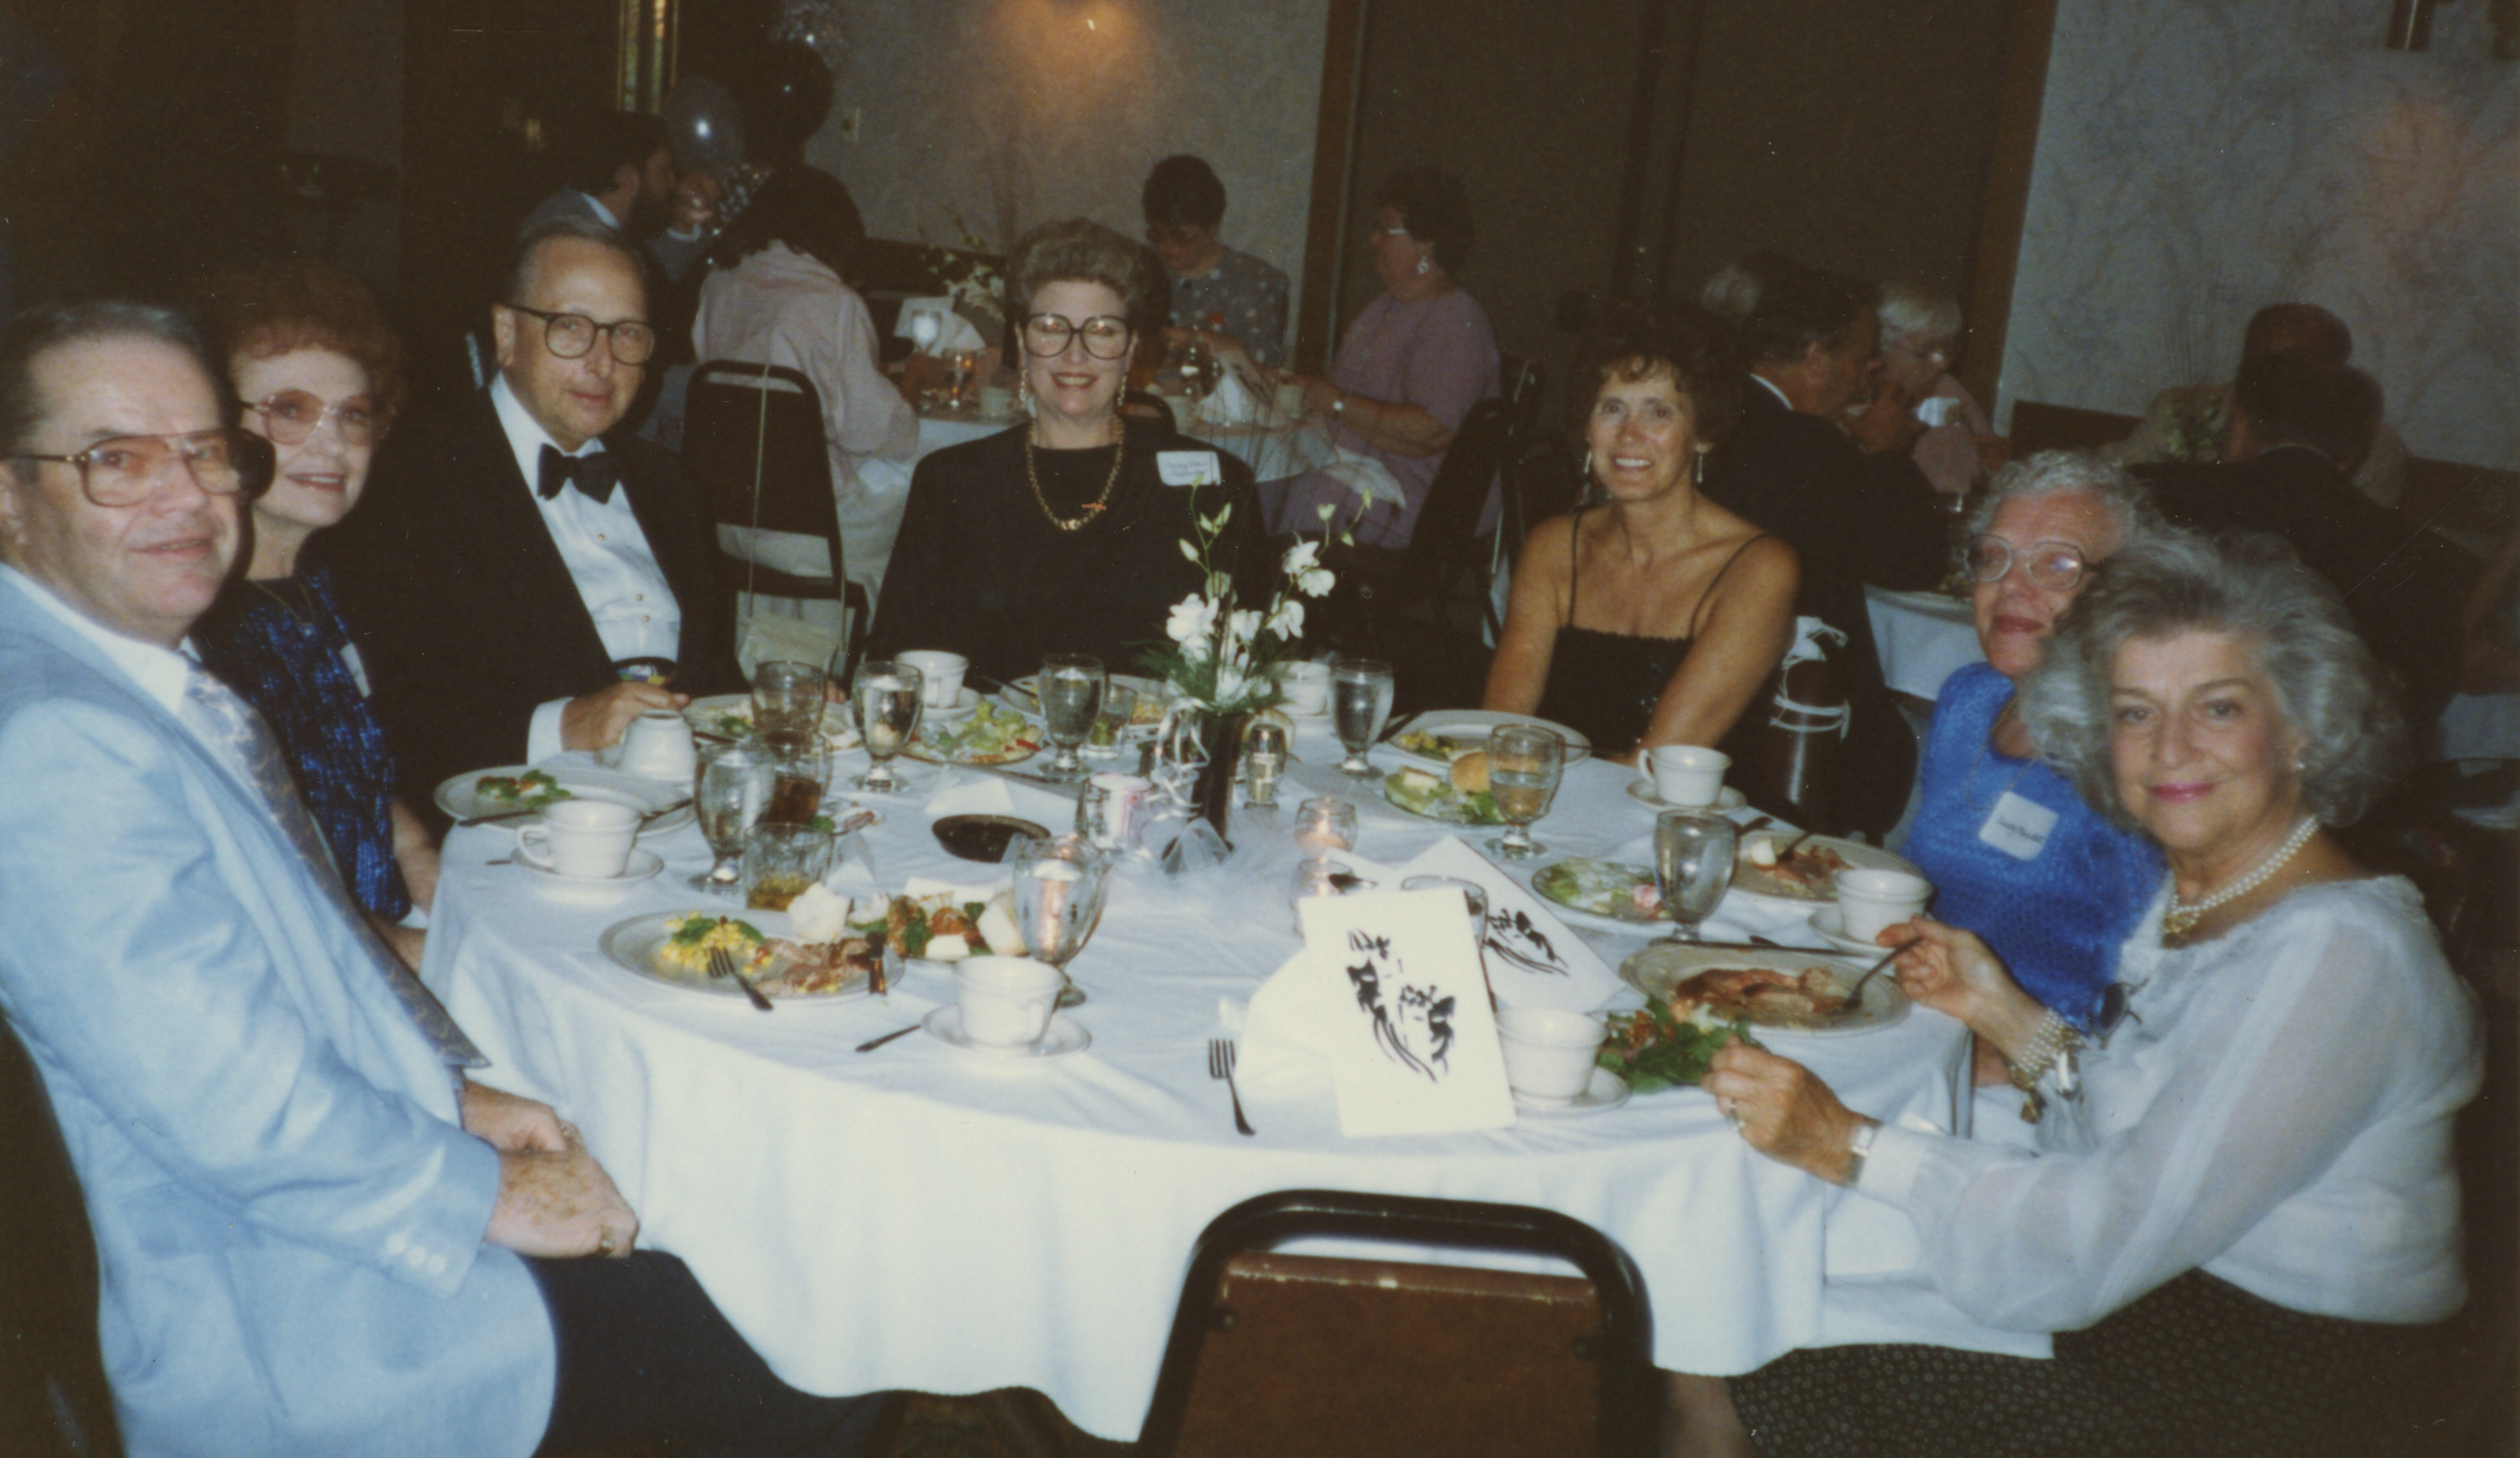 Ann Arbor Civic Theatre: Annual Awards Dinner image